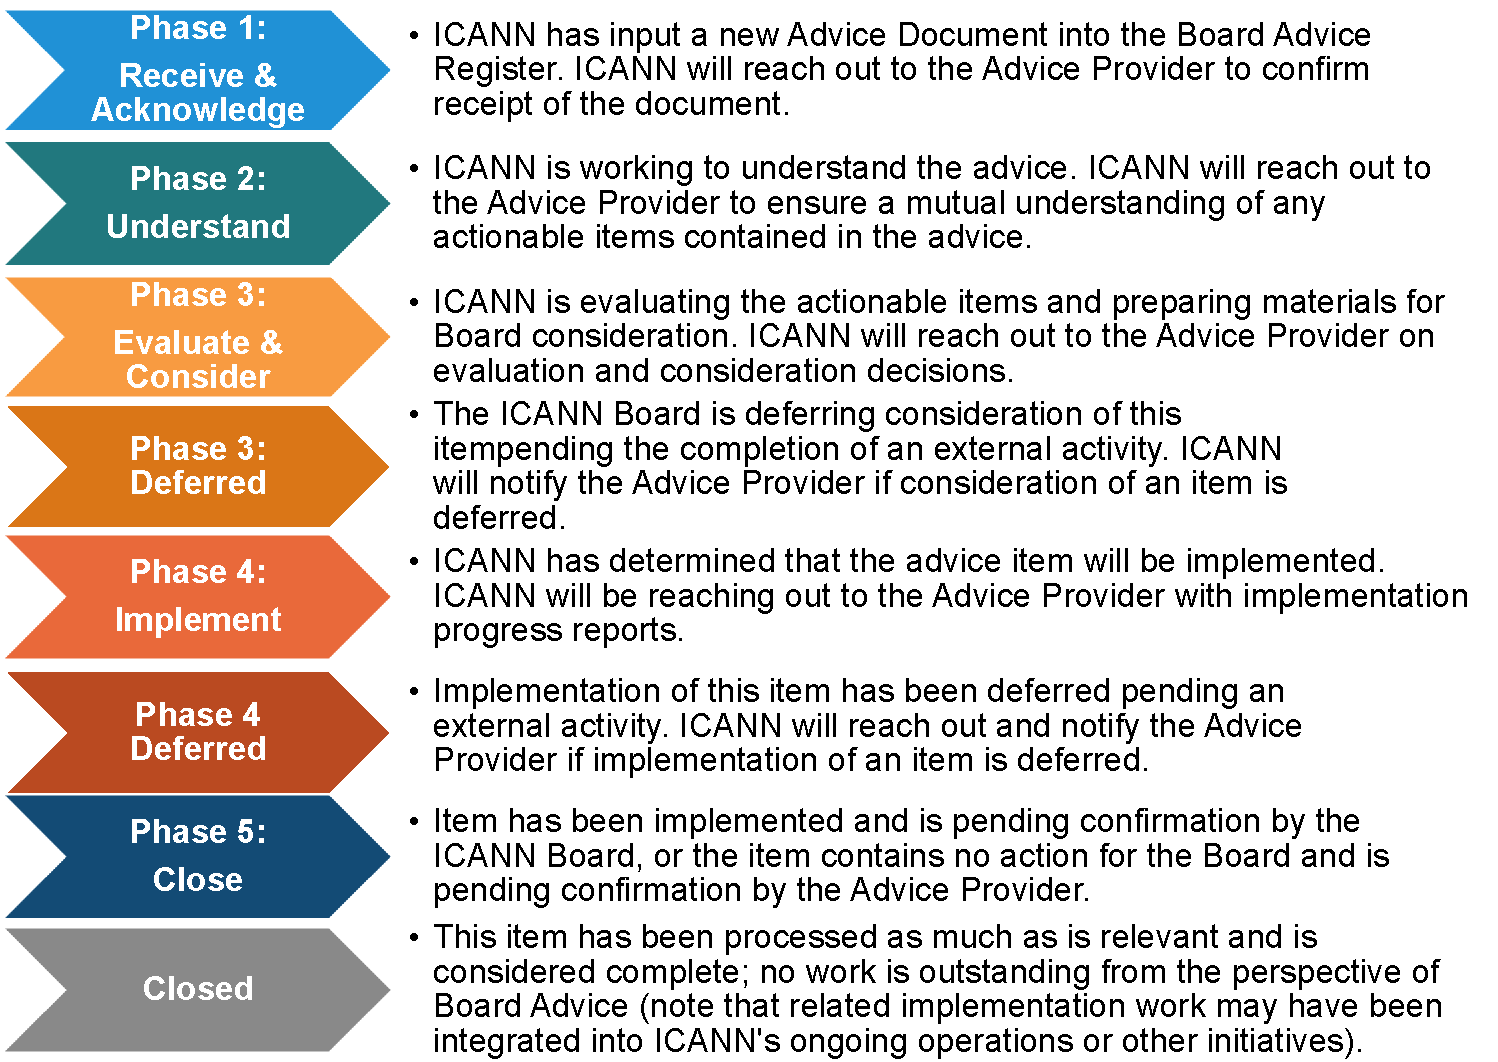 Board Advice Register Phases and Descriptions